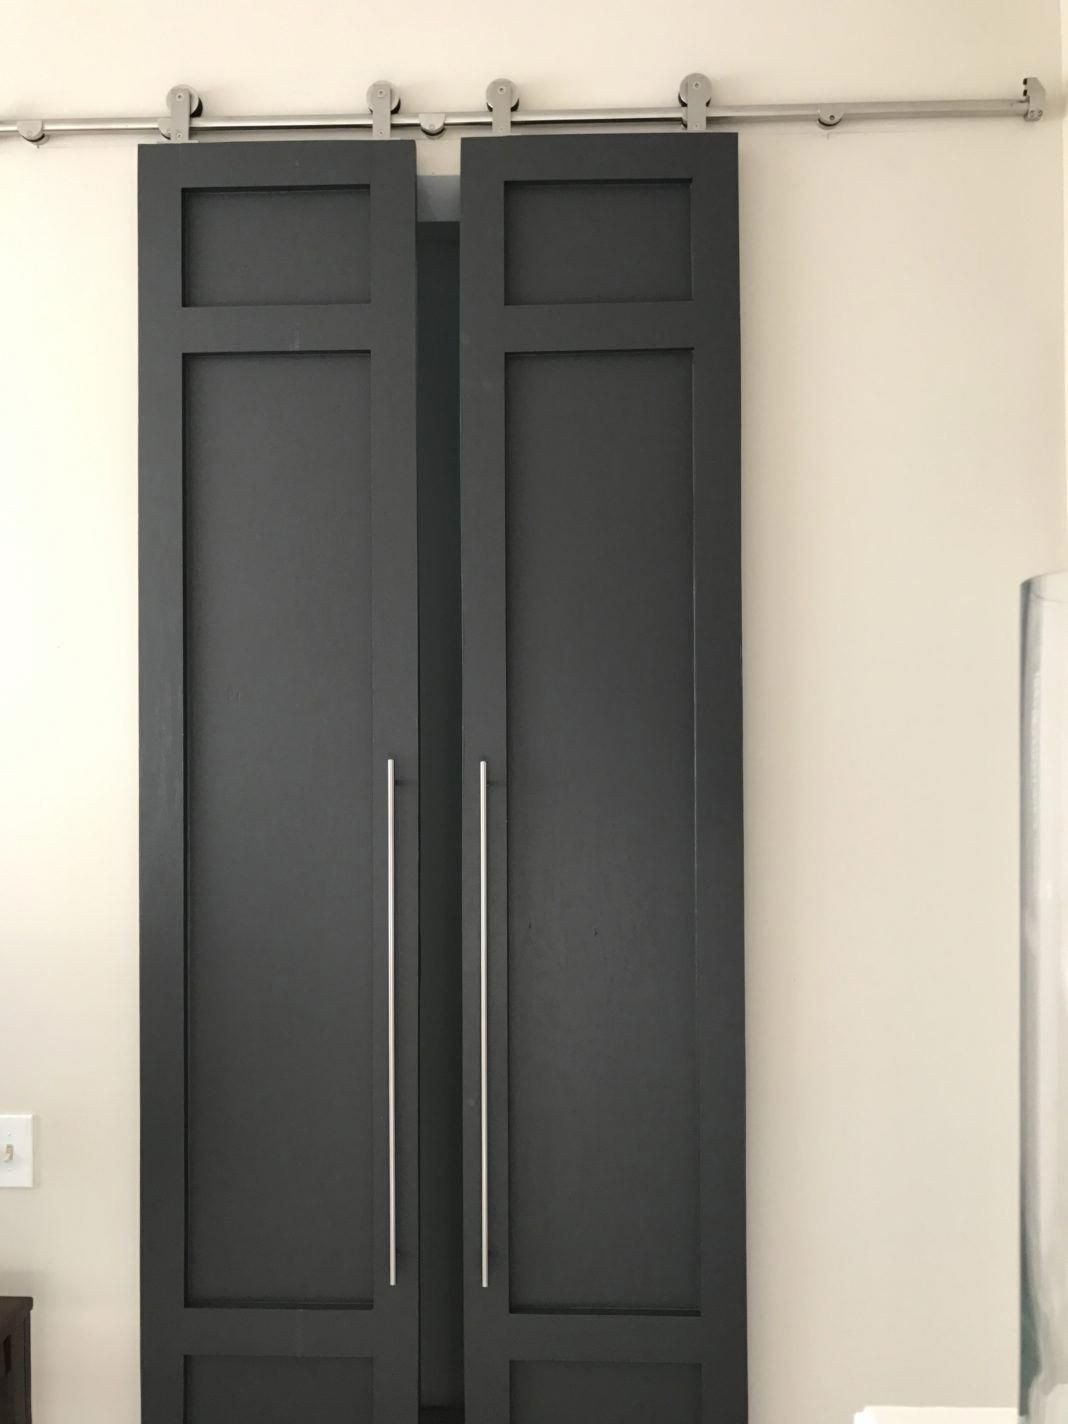 Sliding Doors for Bedroom Beautiful Exterior Sliding Barn Doors for Sale